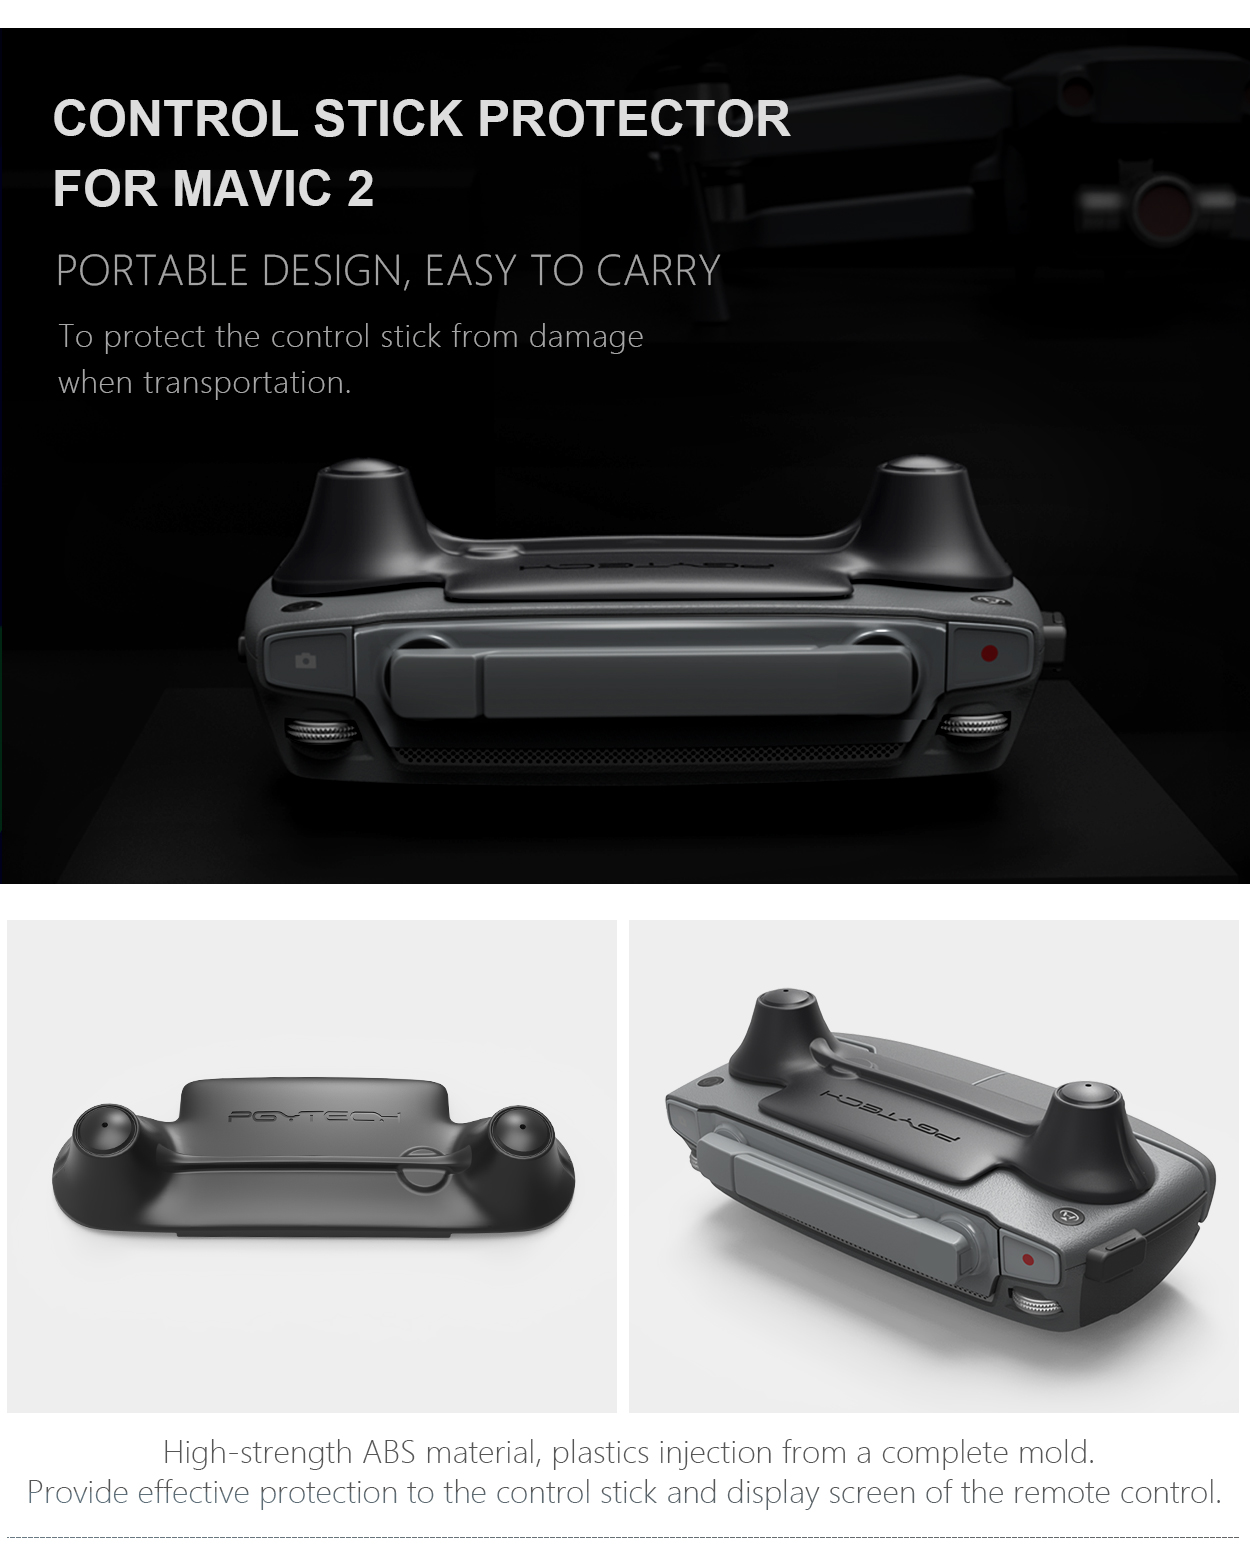 CONTROL STICK PROTECTOR FOR MAVIC 2 - To protect the control stick from damage when transportation.